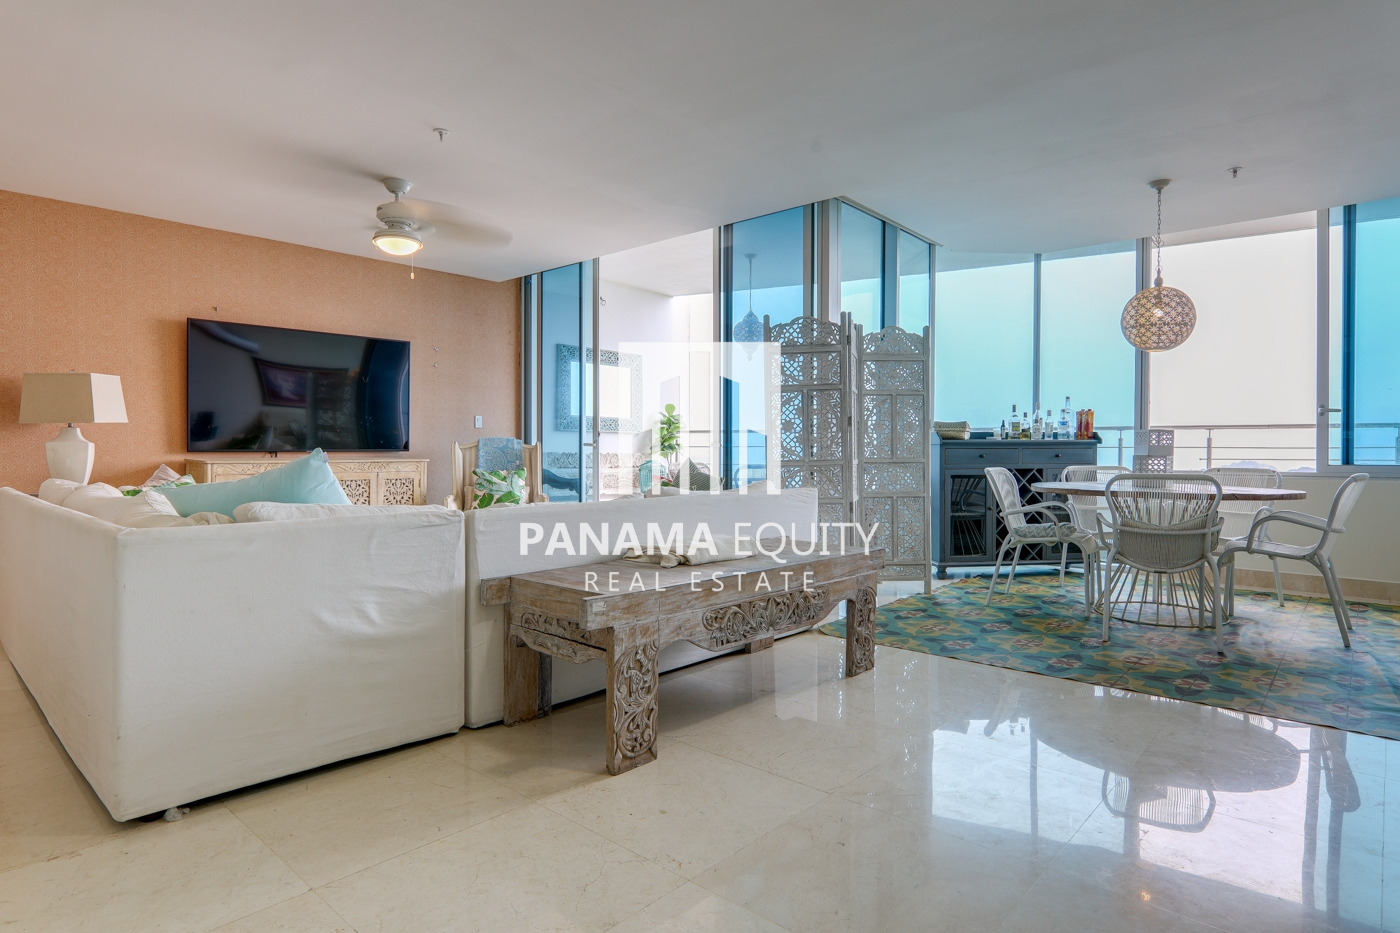 Casa Bonita Offers Complete Privacy & Luxury Penthouse for Rent